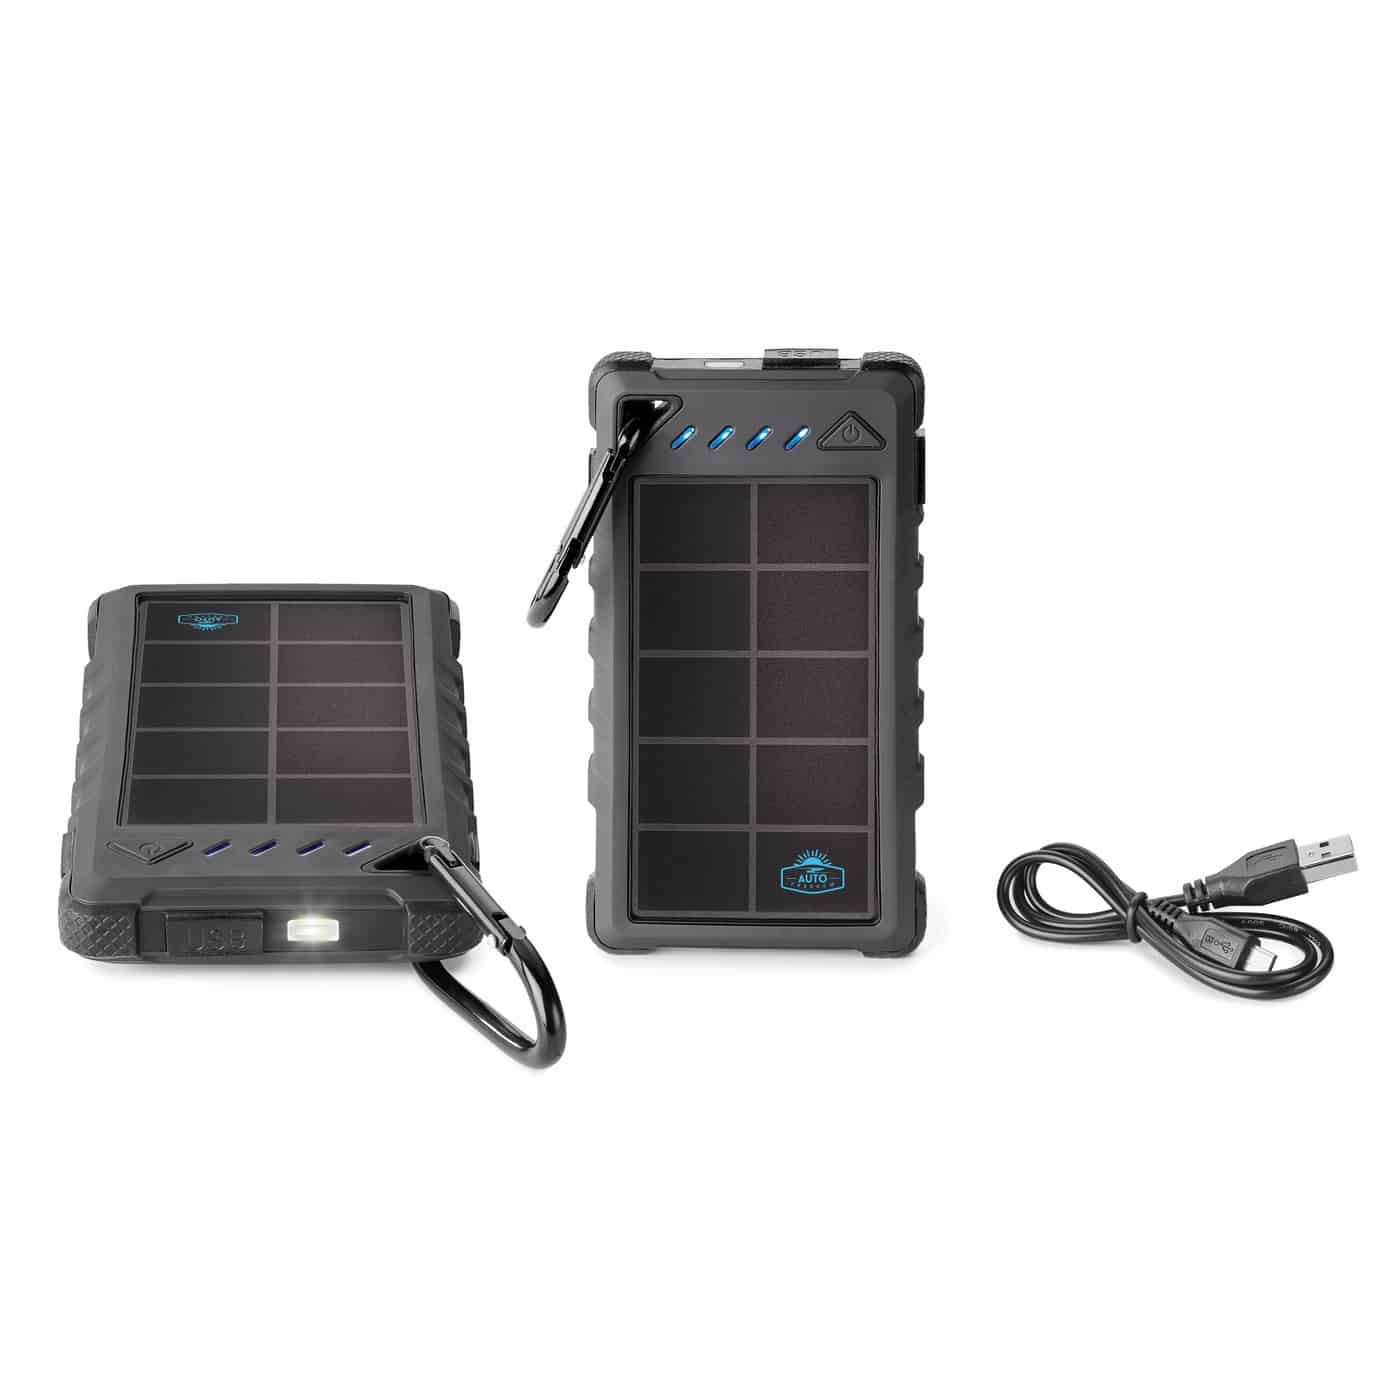 8000 Mah Solar Power Bank Includes Ul Certified Battery Spector Gifts